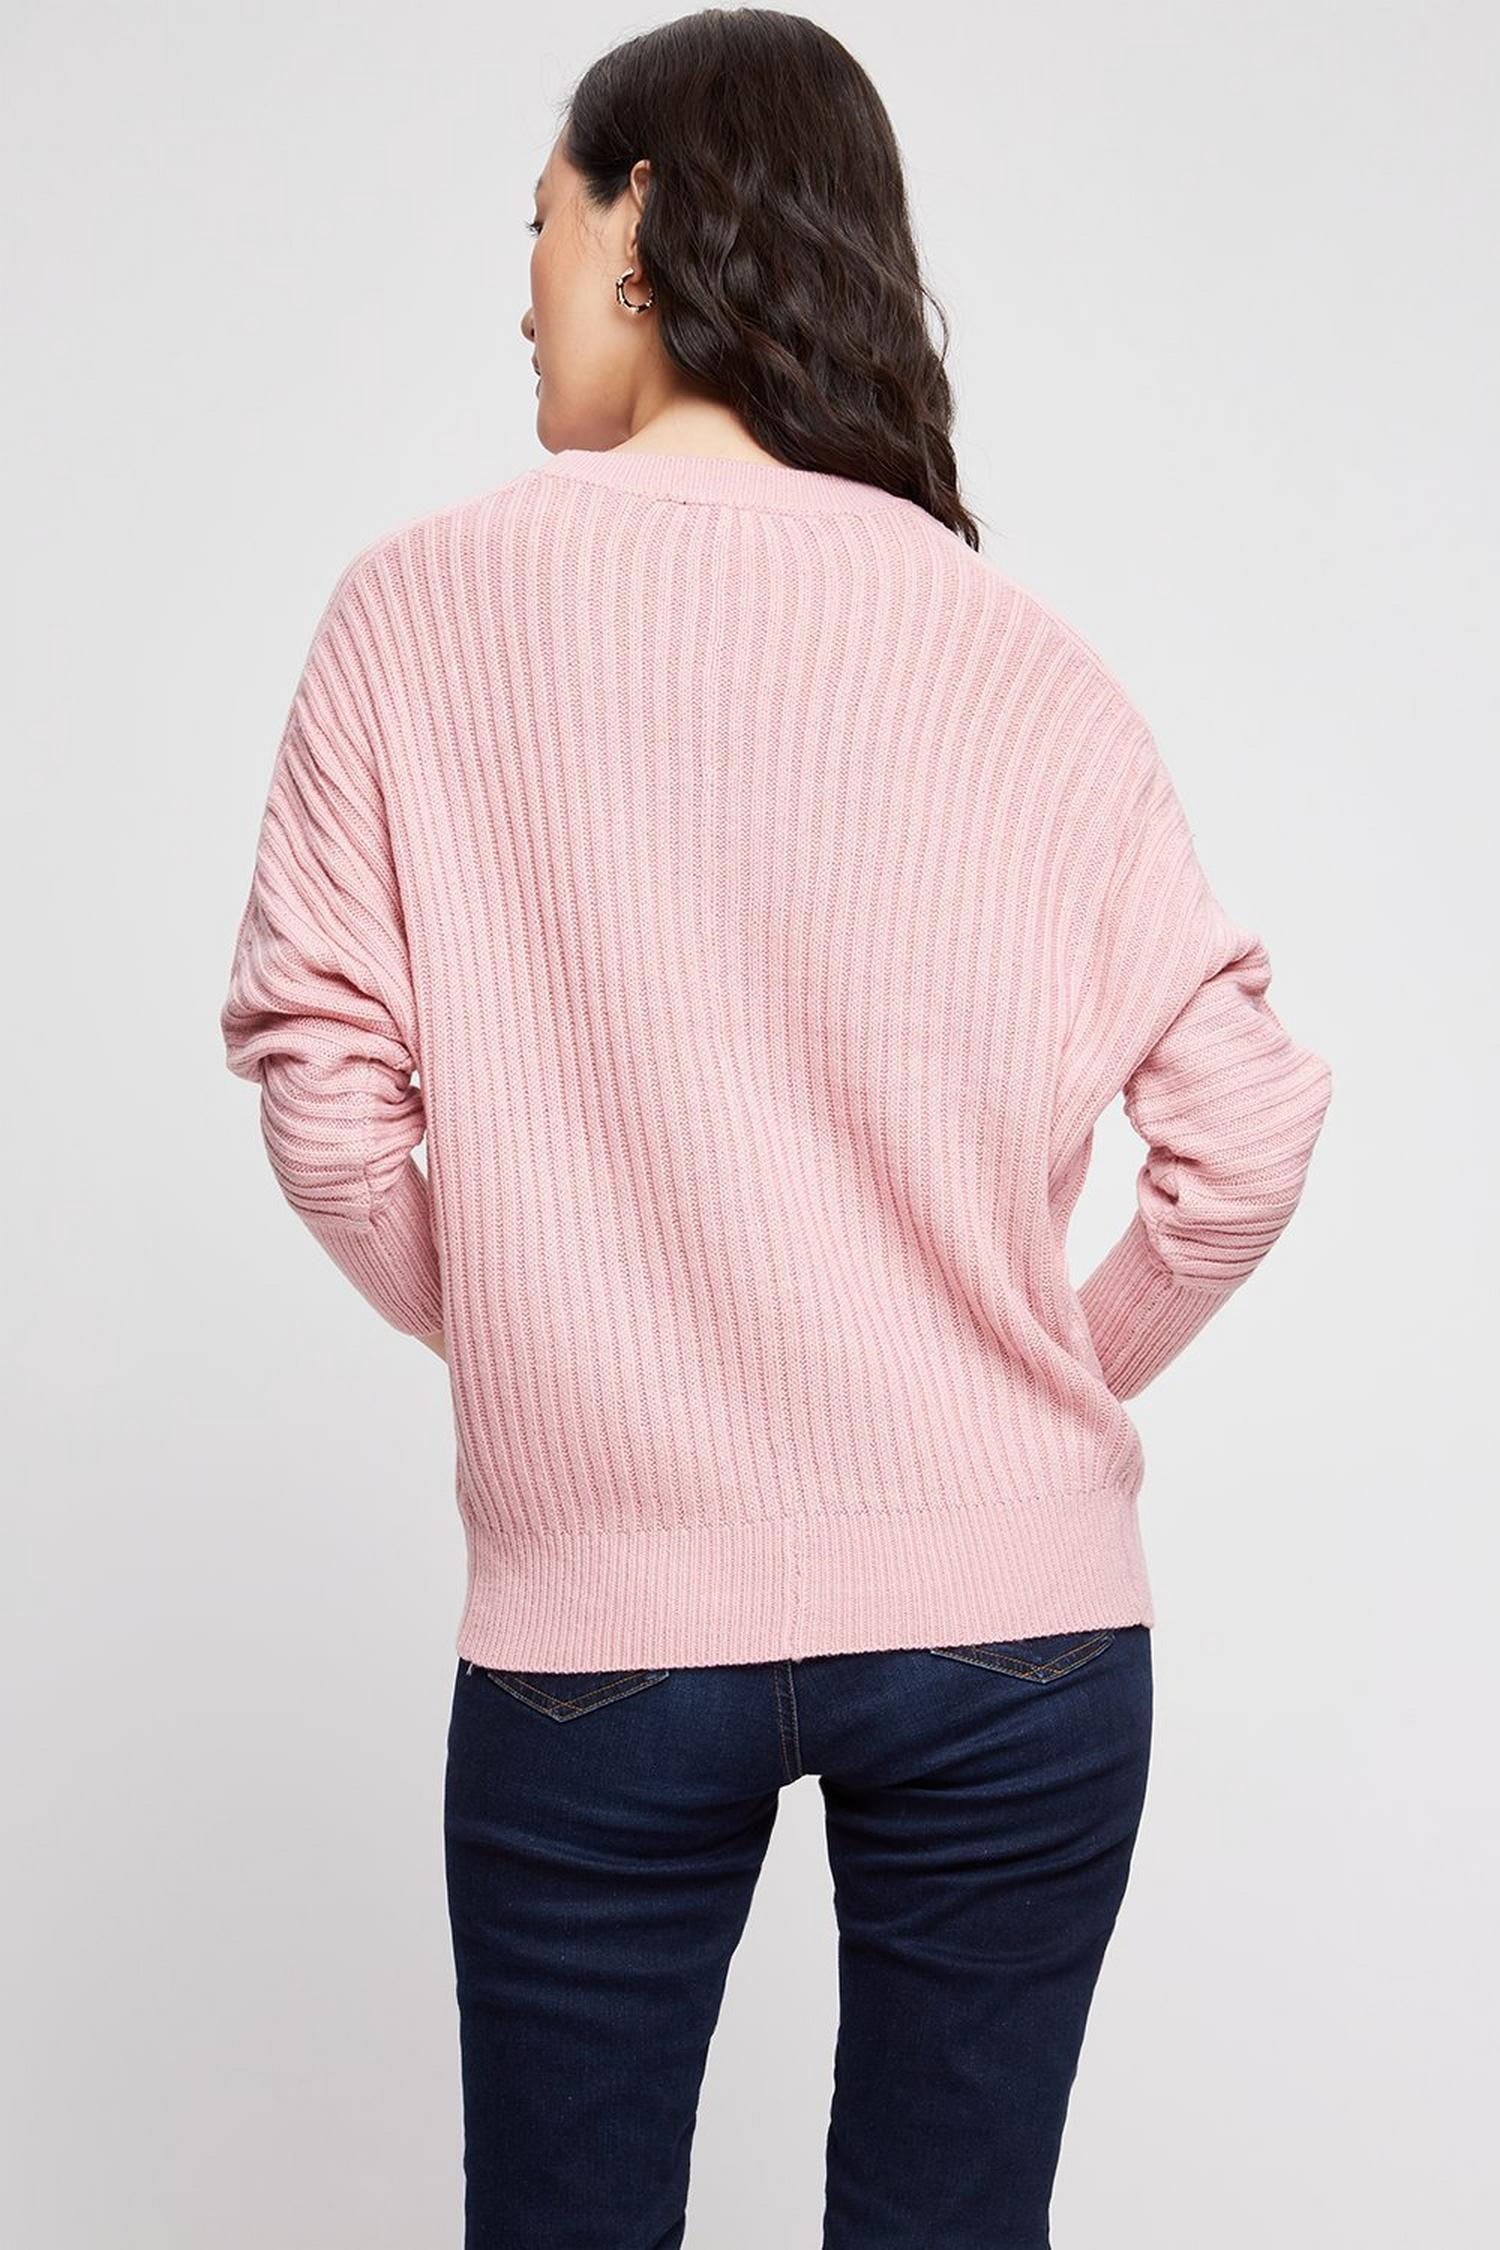 153 Blush Ribbed Batwing Jumper image number 3